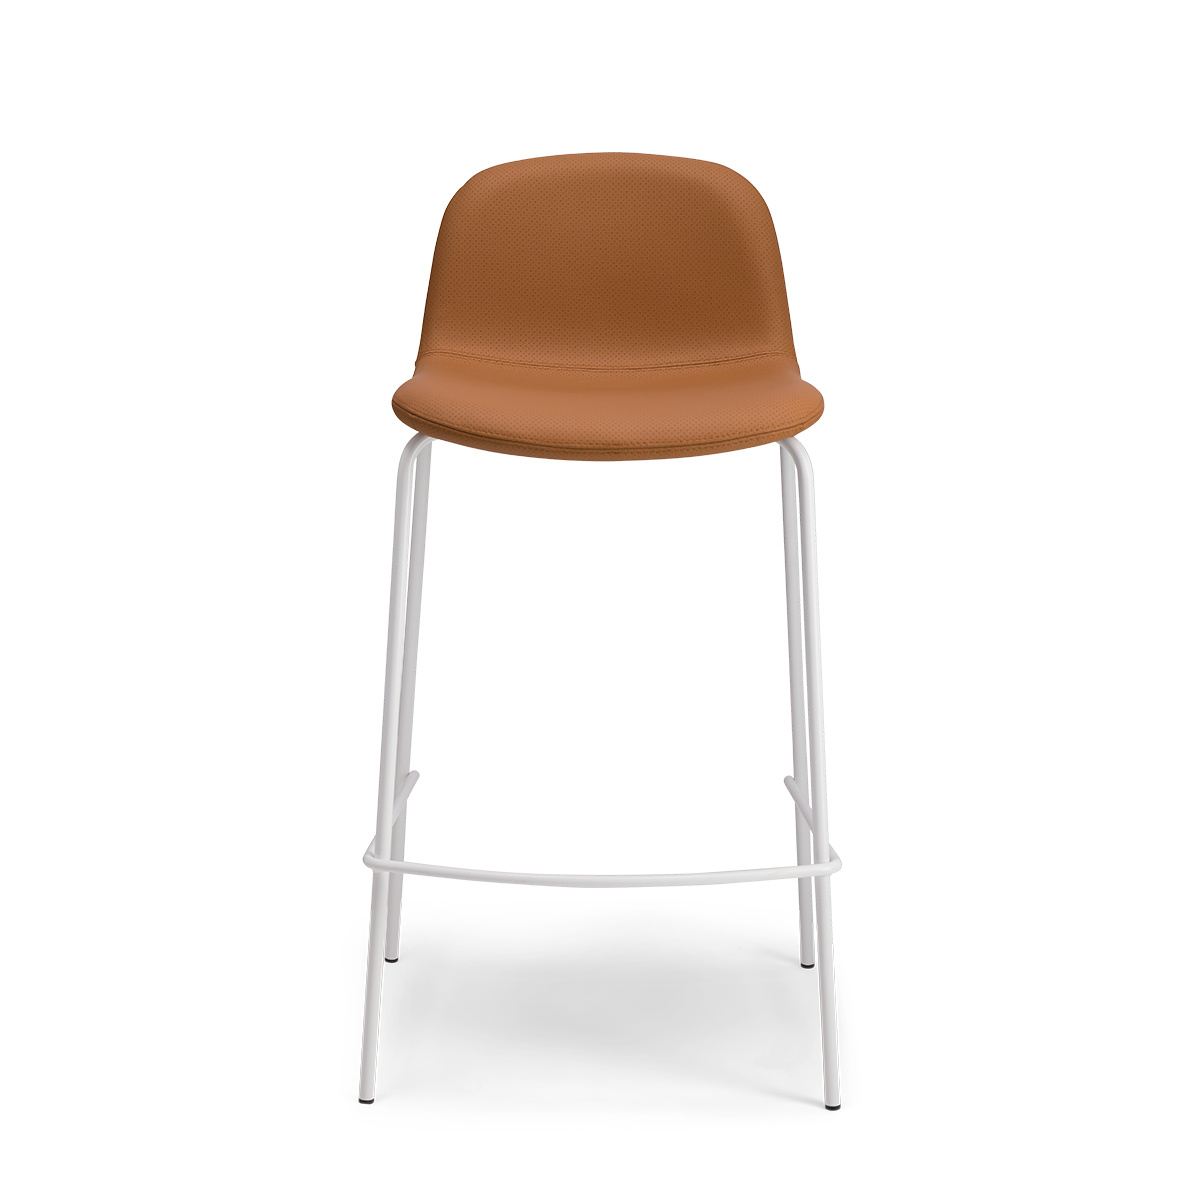 Monza barstool in caramel perforated leather with a white frame